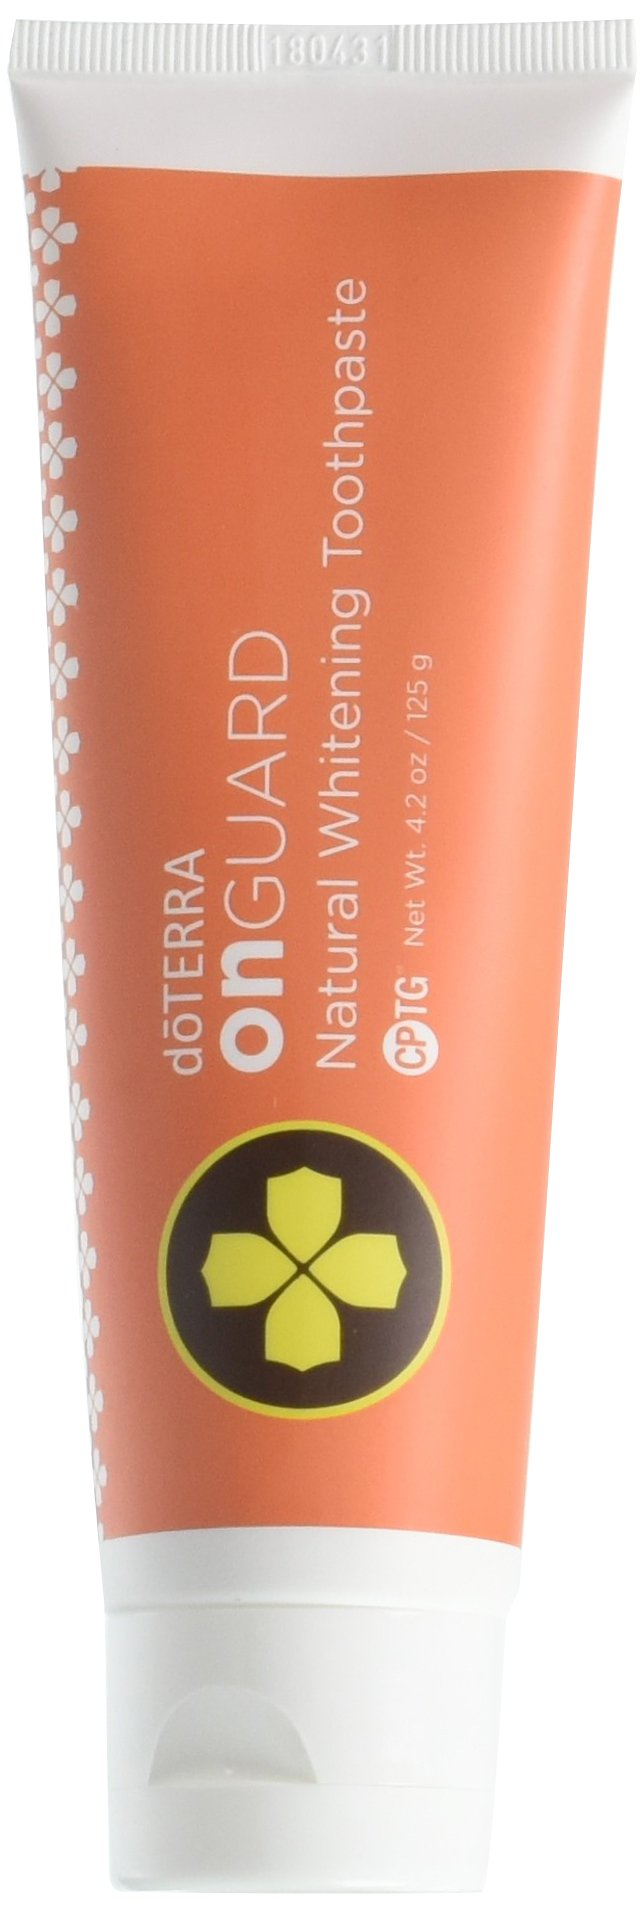 dōTERRA On Guard Natural Whitening Toothpaste 4.2oz (2 Pack)